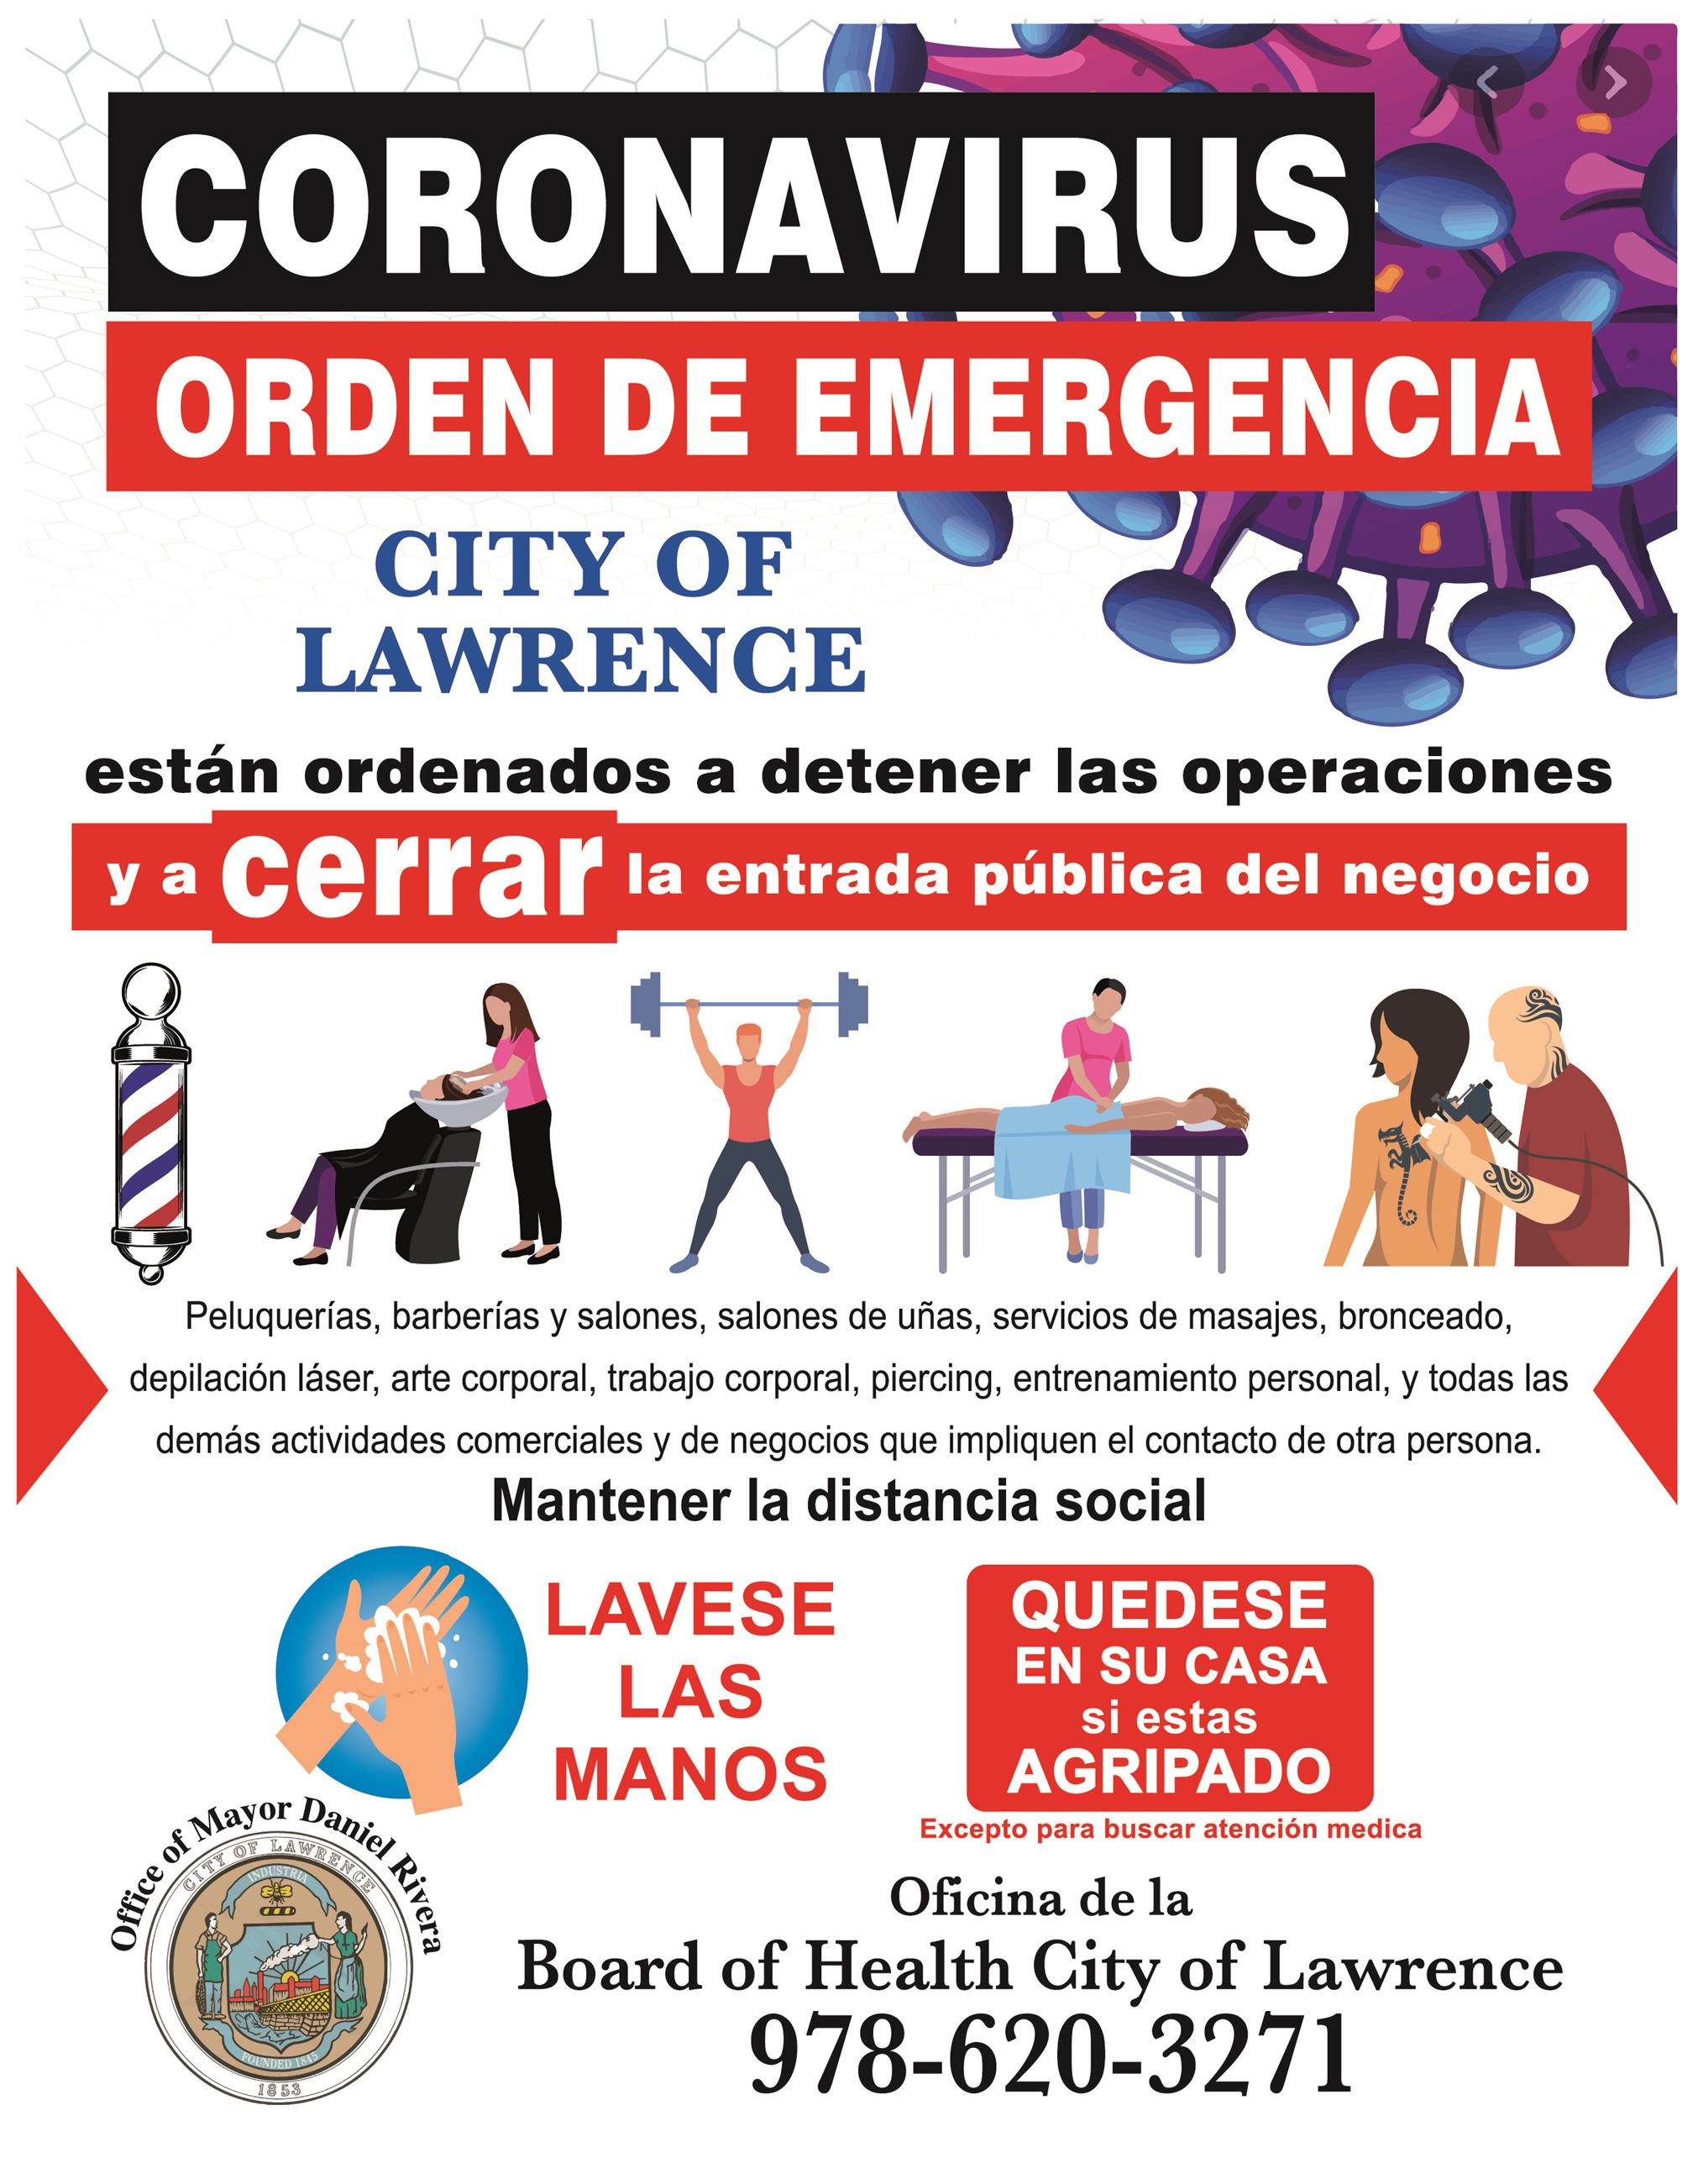 CITY OF LAWRENCE - CORONAVIRUS SPH-BOARD OF HEALTH